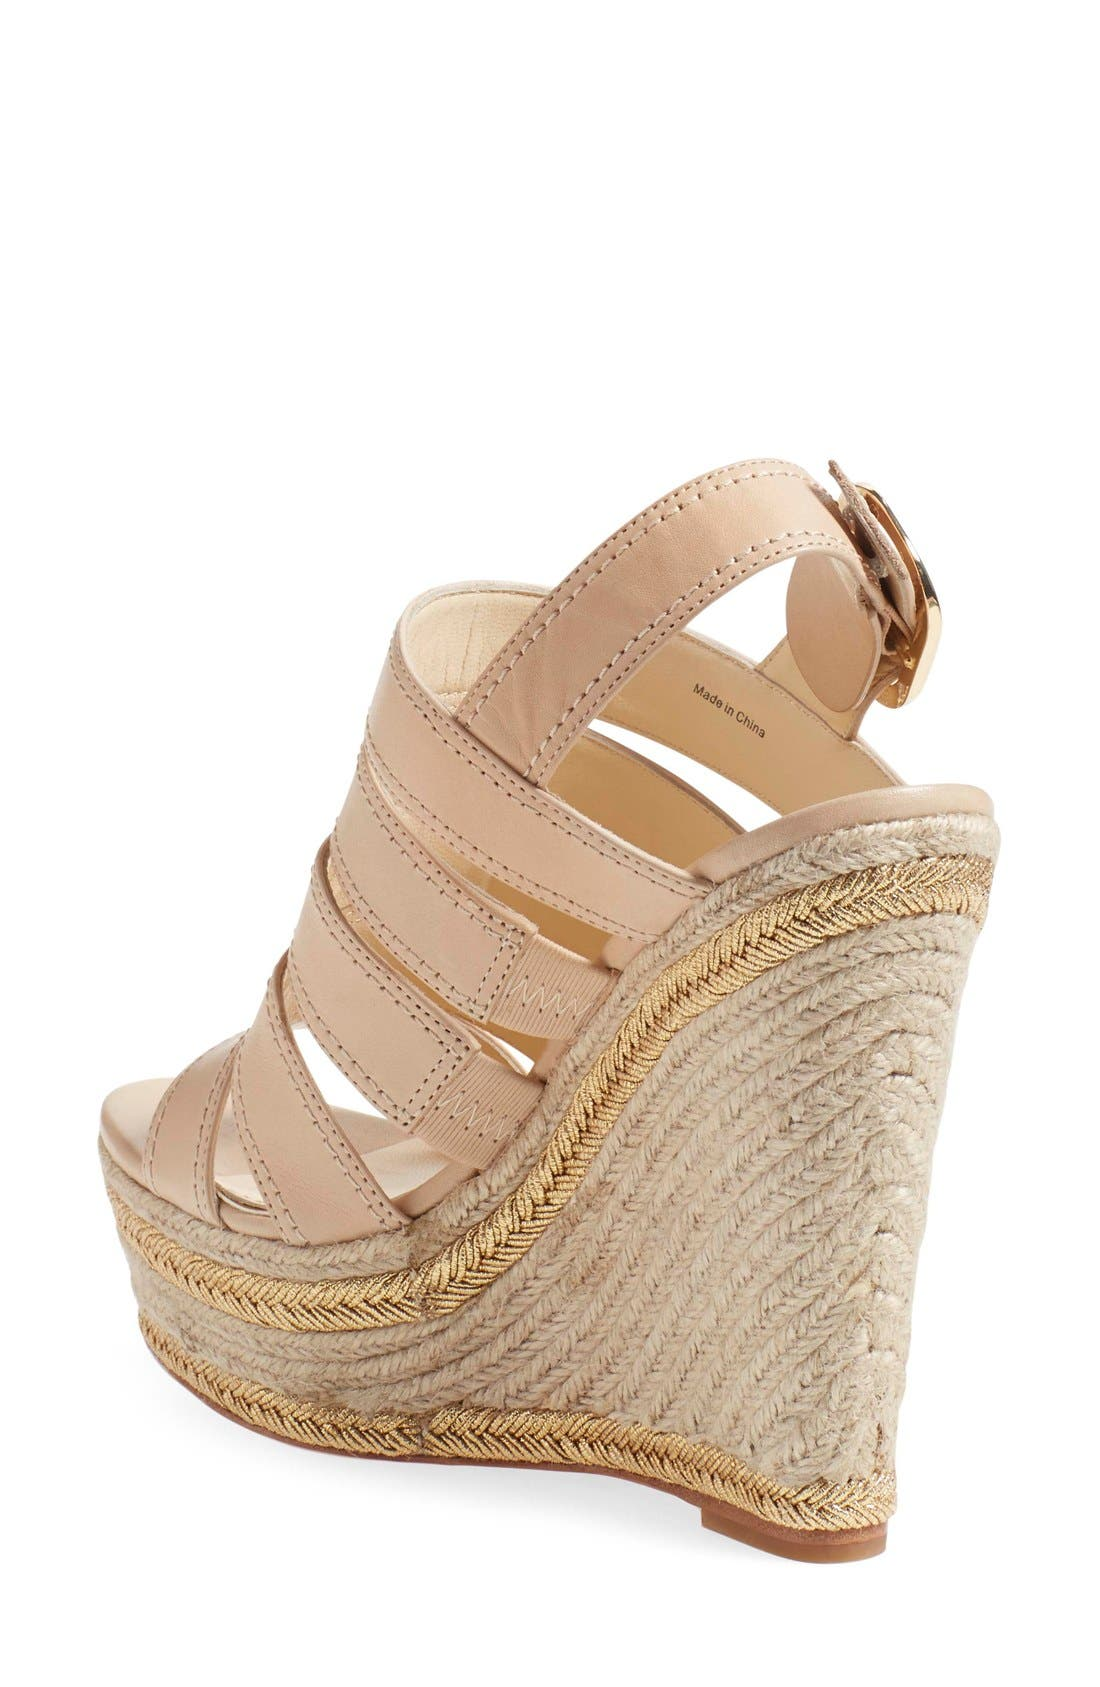 Alternate Image 2  - Rachel Zoe 'Gia' Sandal (Women)